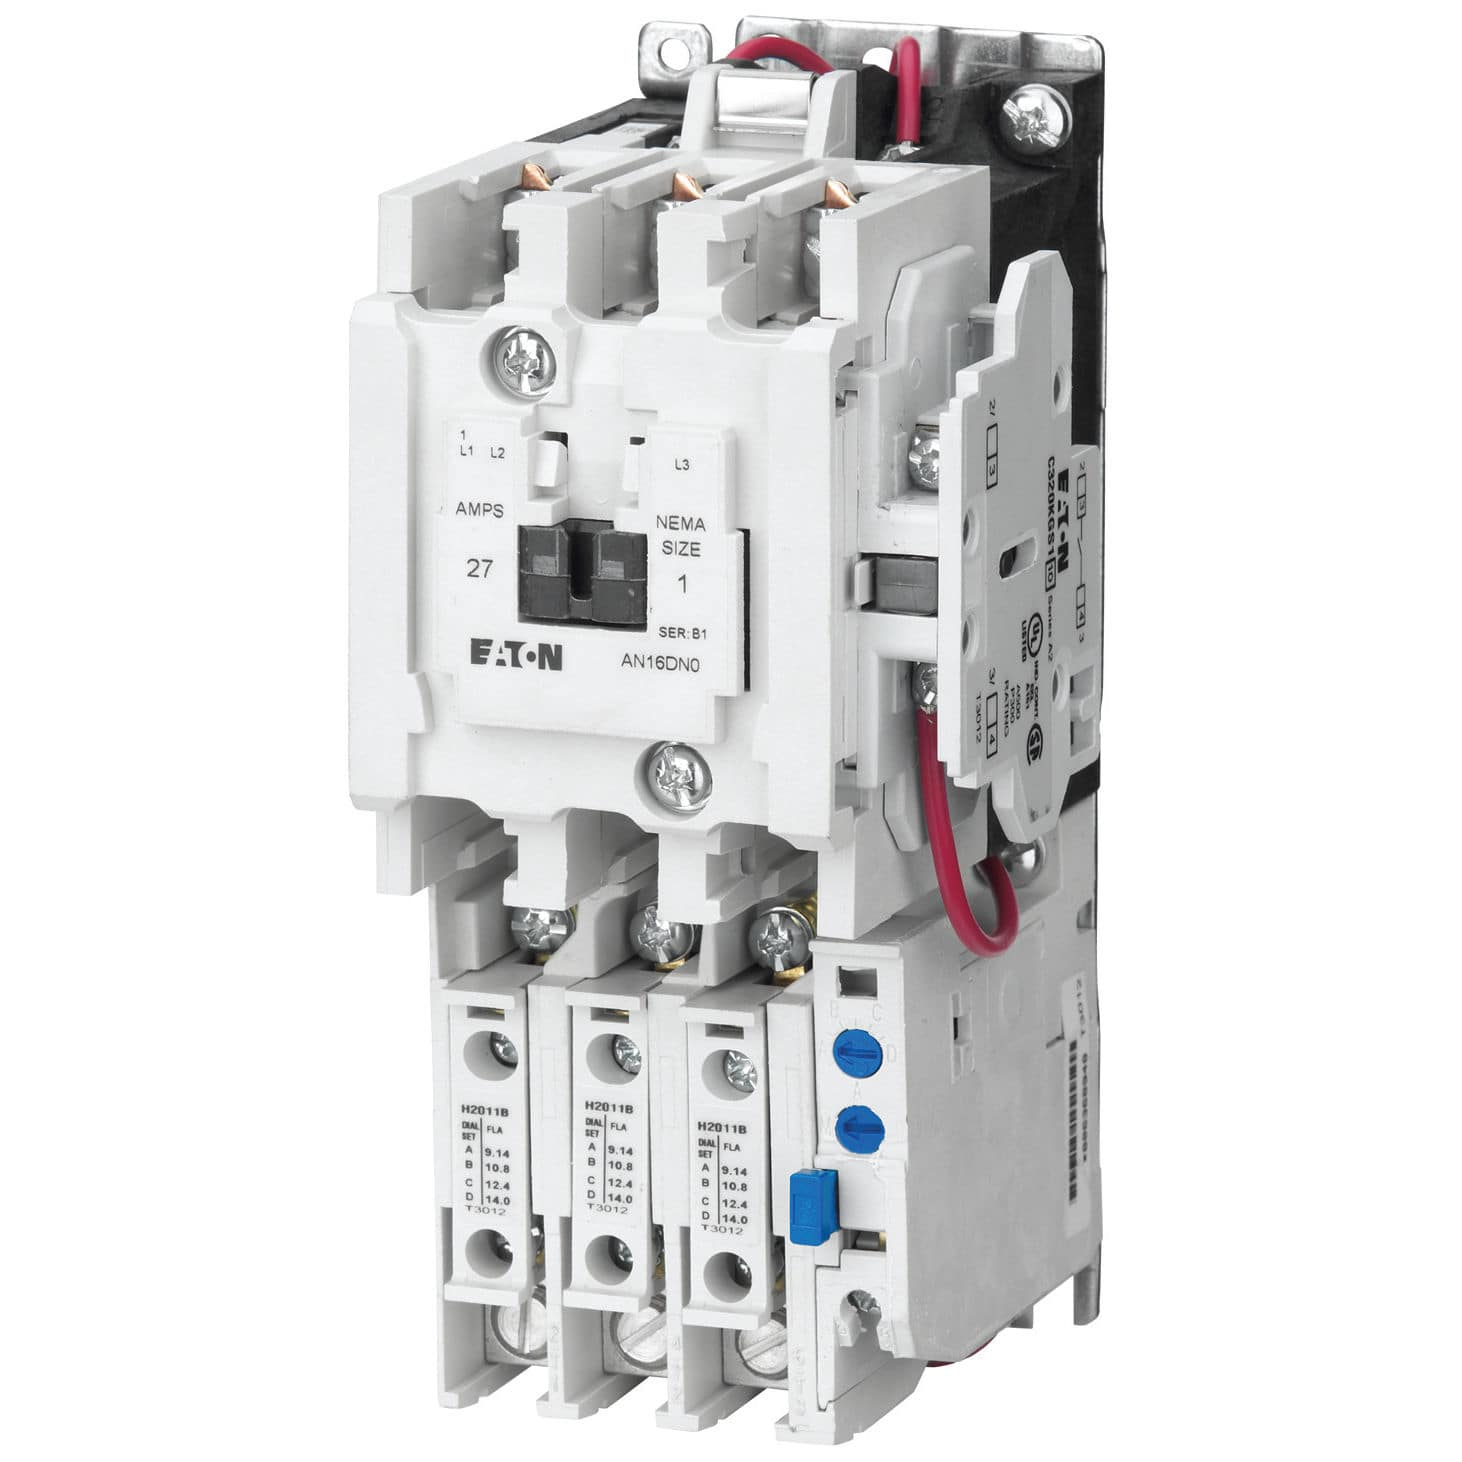 Thermal Protection Relay  Threephase  Automatic Reset  Manual - Protection relays and circuit breakers